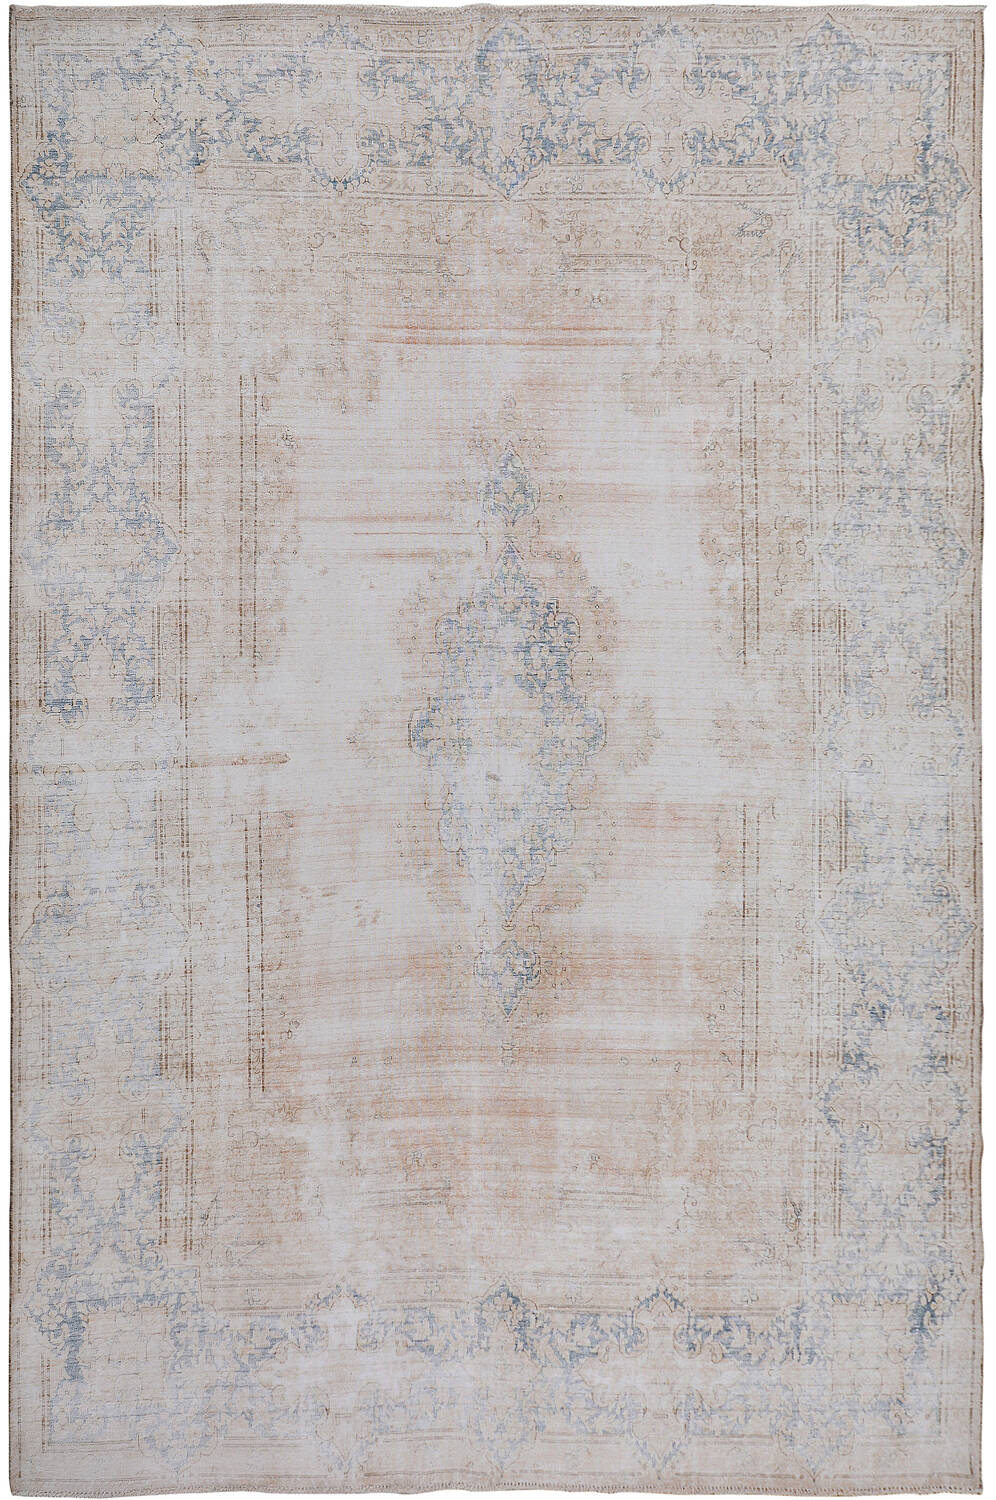 Distressed Antique Kerman Persian Muted Area Rug 10x13 image 1